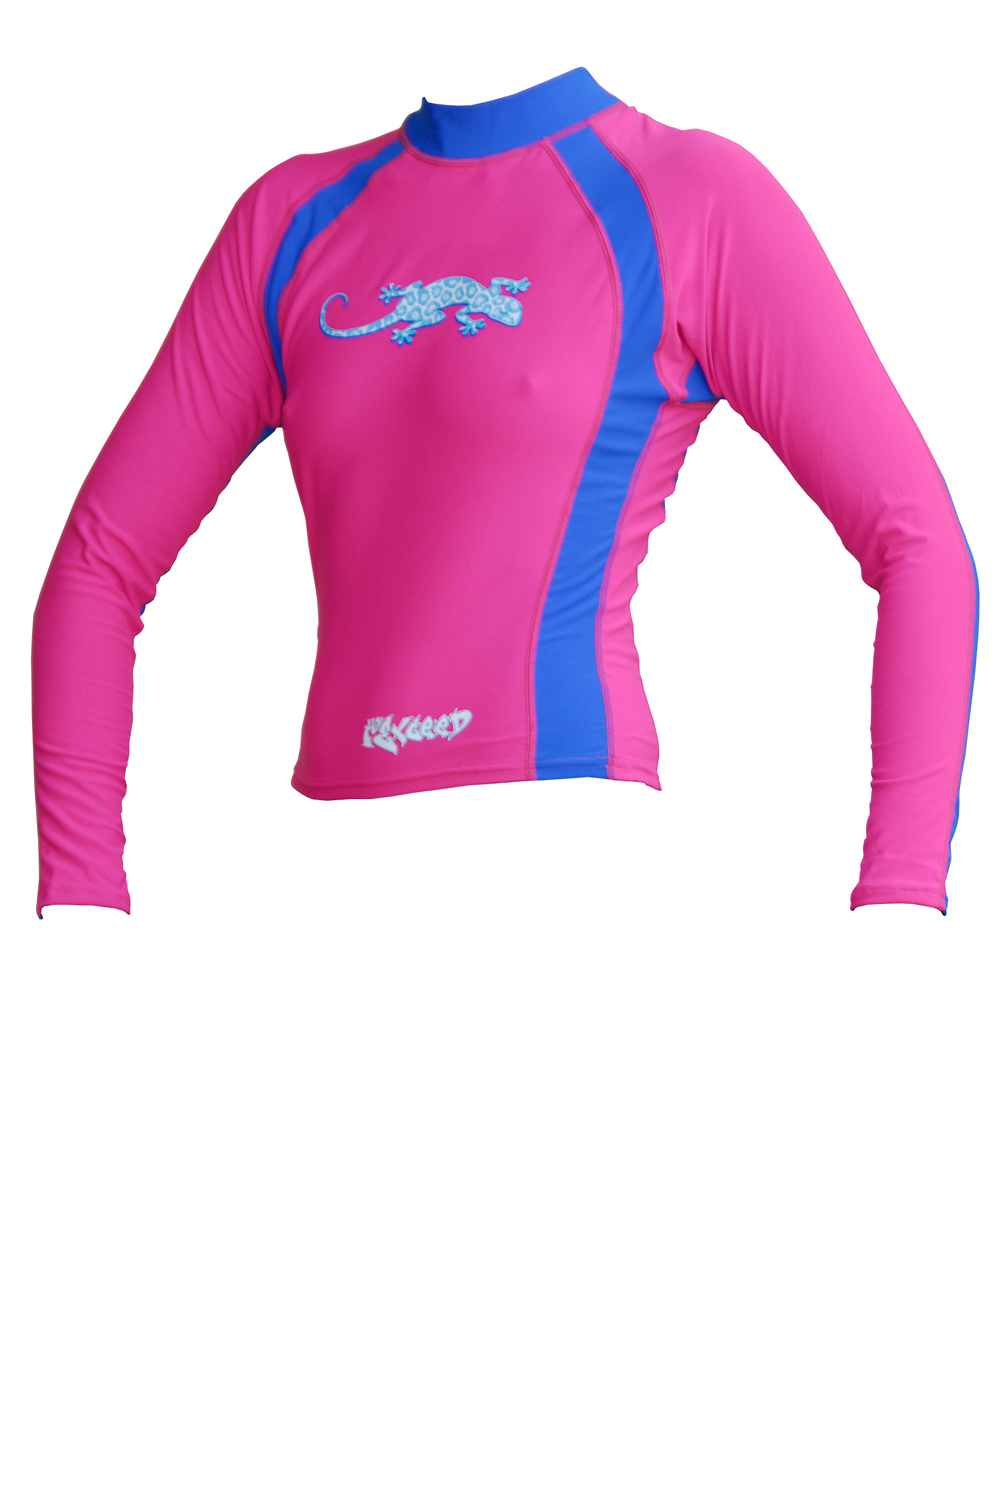 Exceed Evasive Remix Womens Long Sleeve Rash Guard